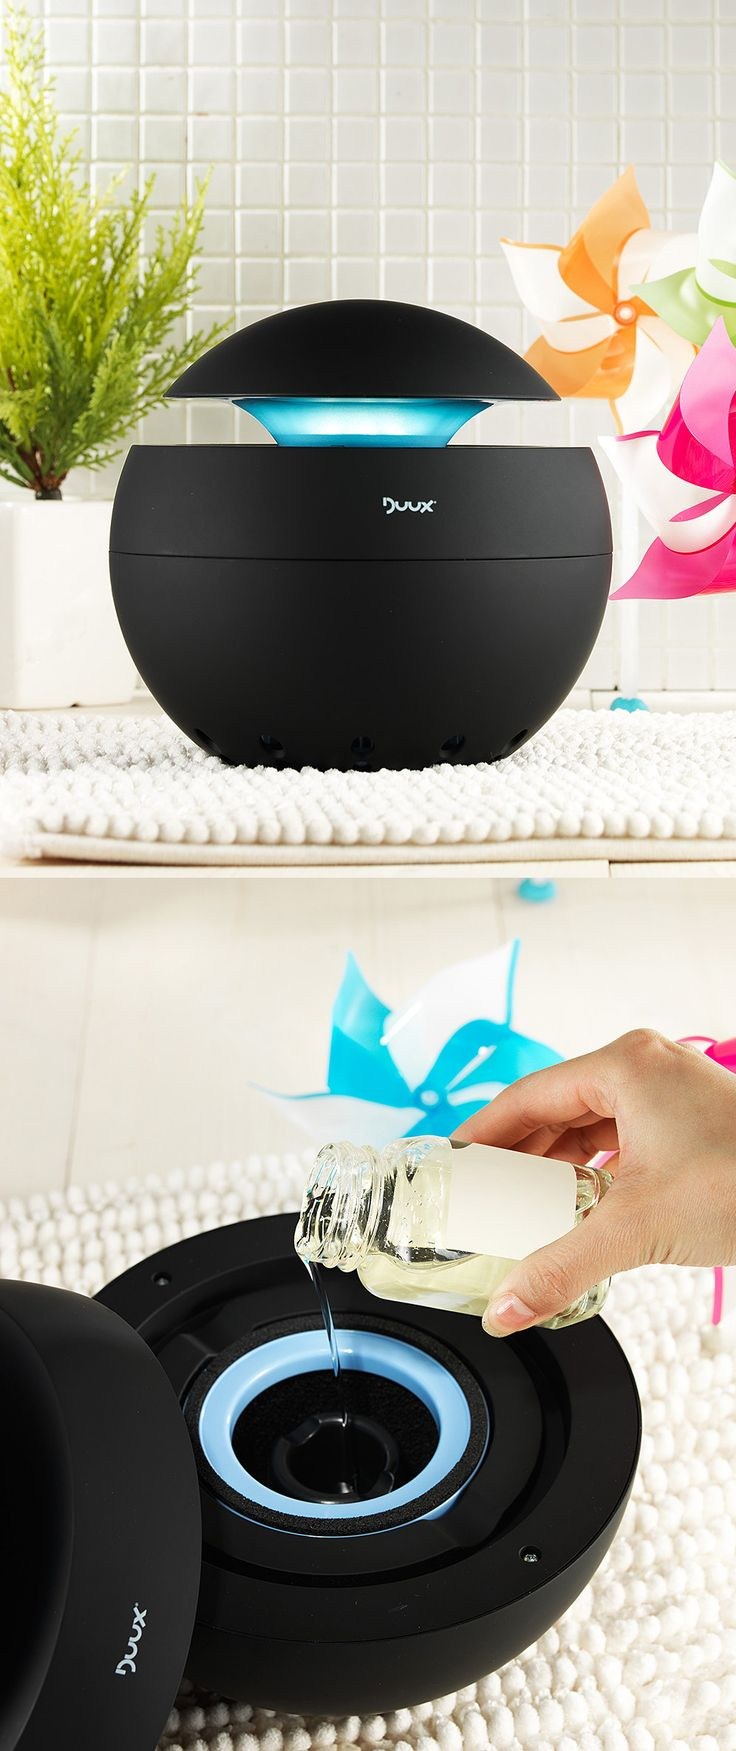 Humidifier + Vaporizer - pour lavender or eucalyptus in the oil tank for aromatherapy.